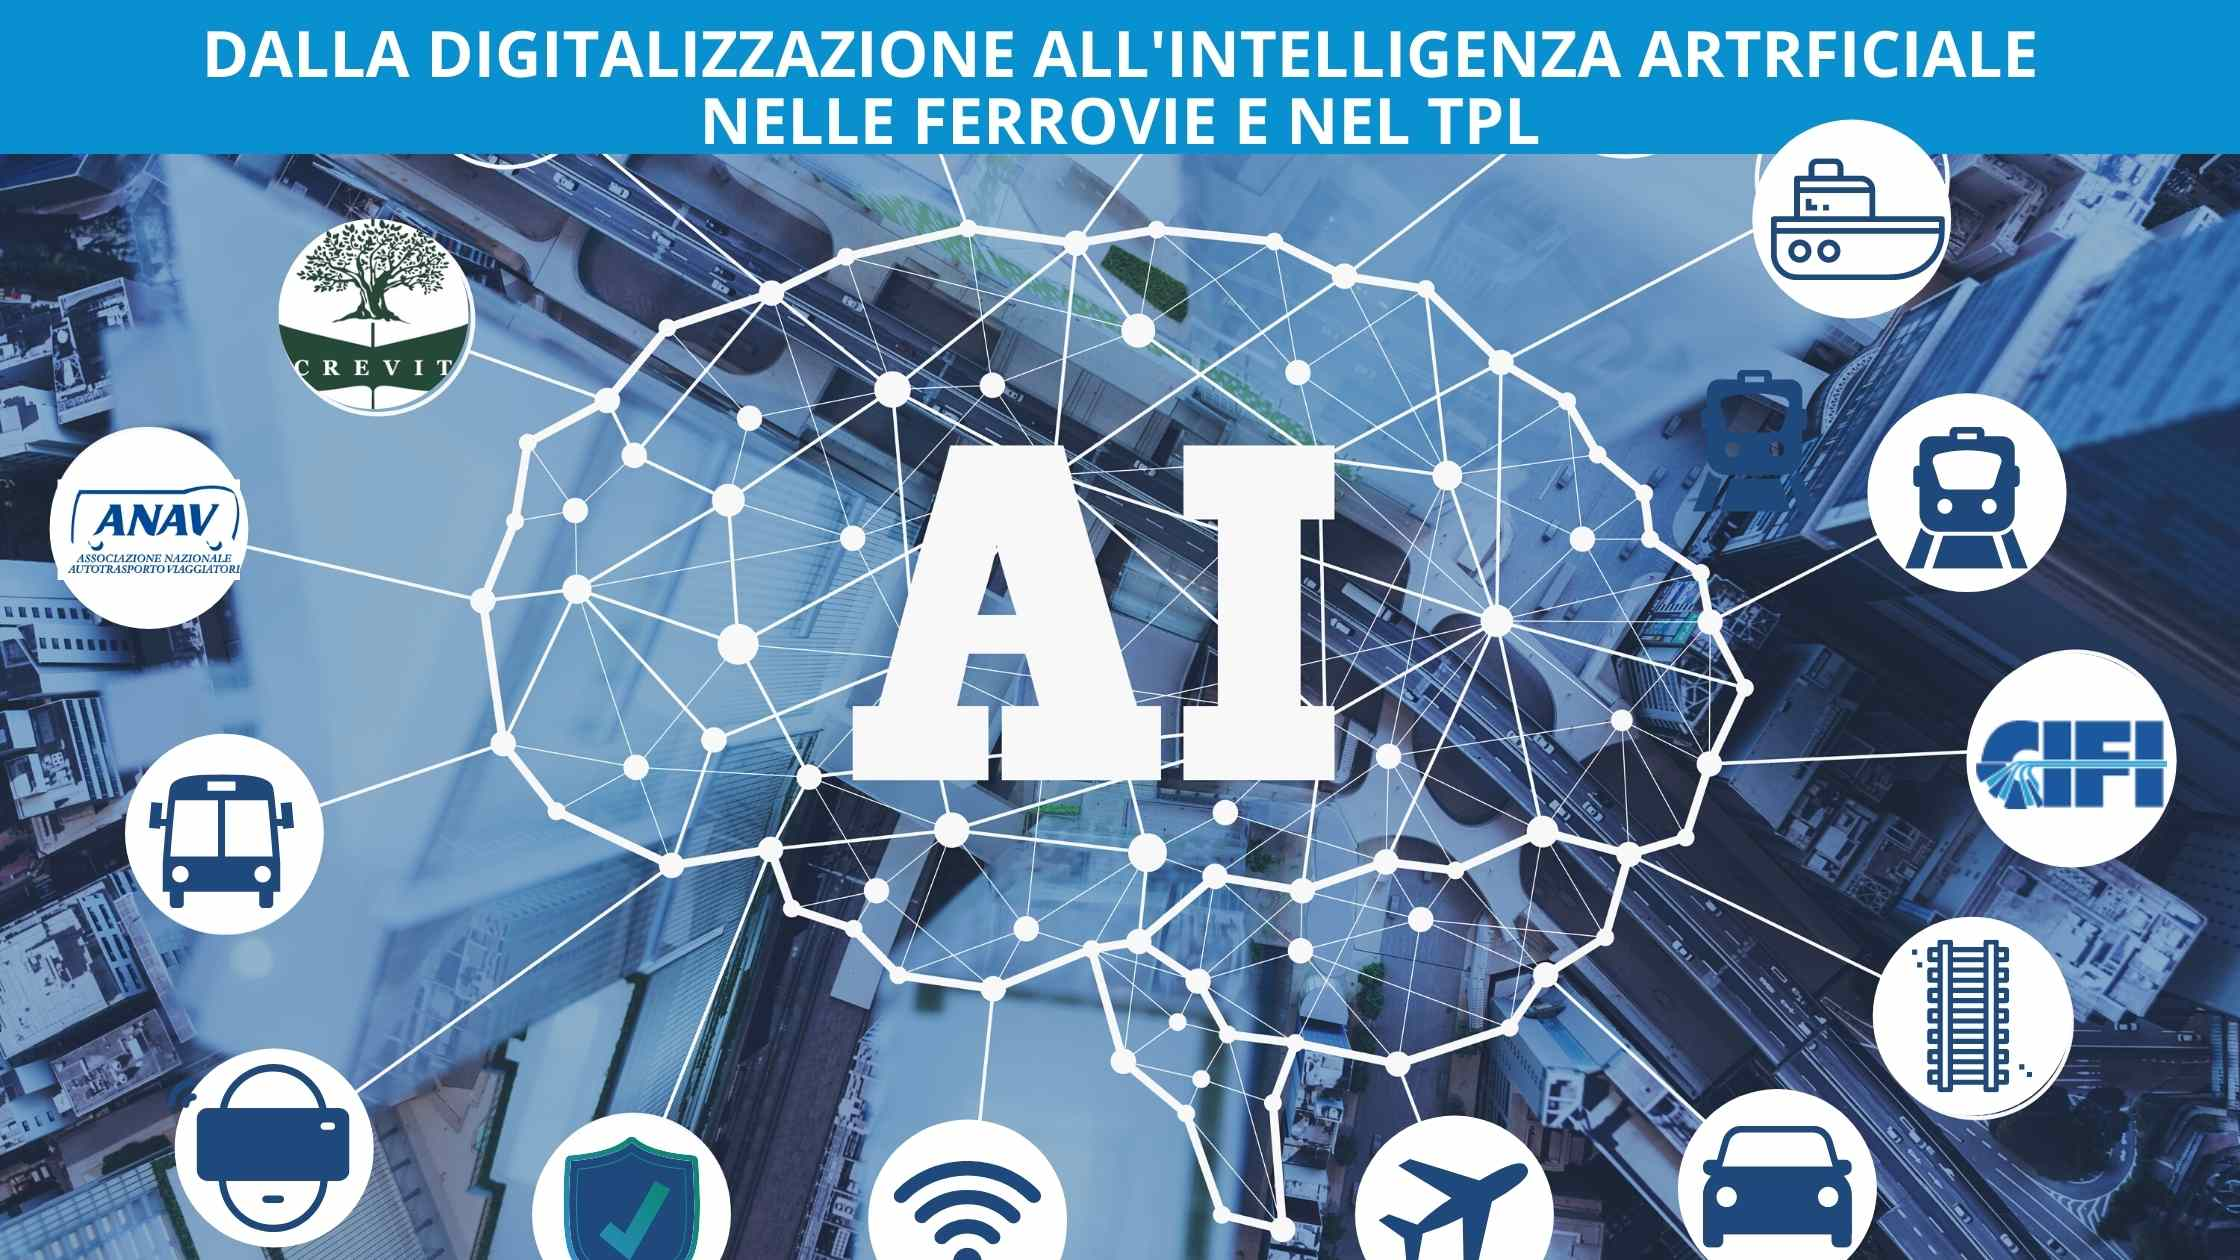 Strategia digitale nelle ferrovie